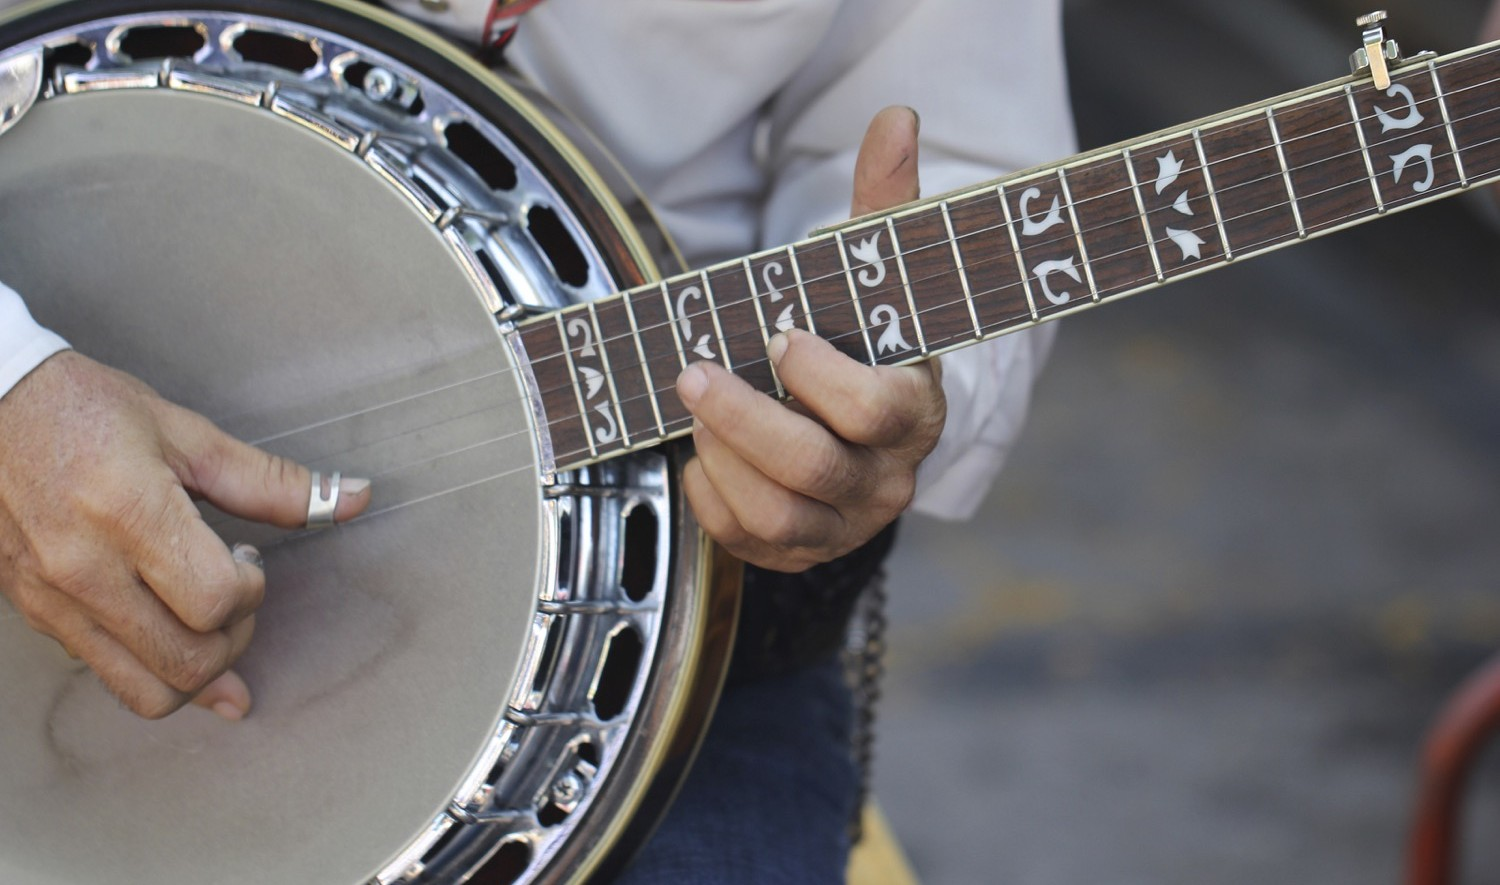 Close up image of a man's hands playing the banjo.